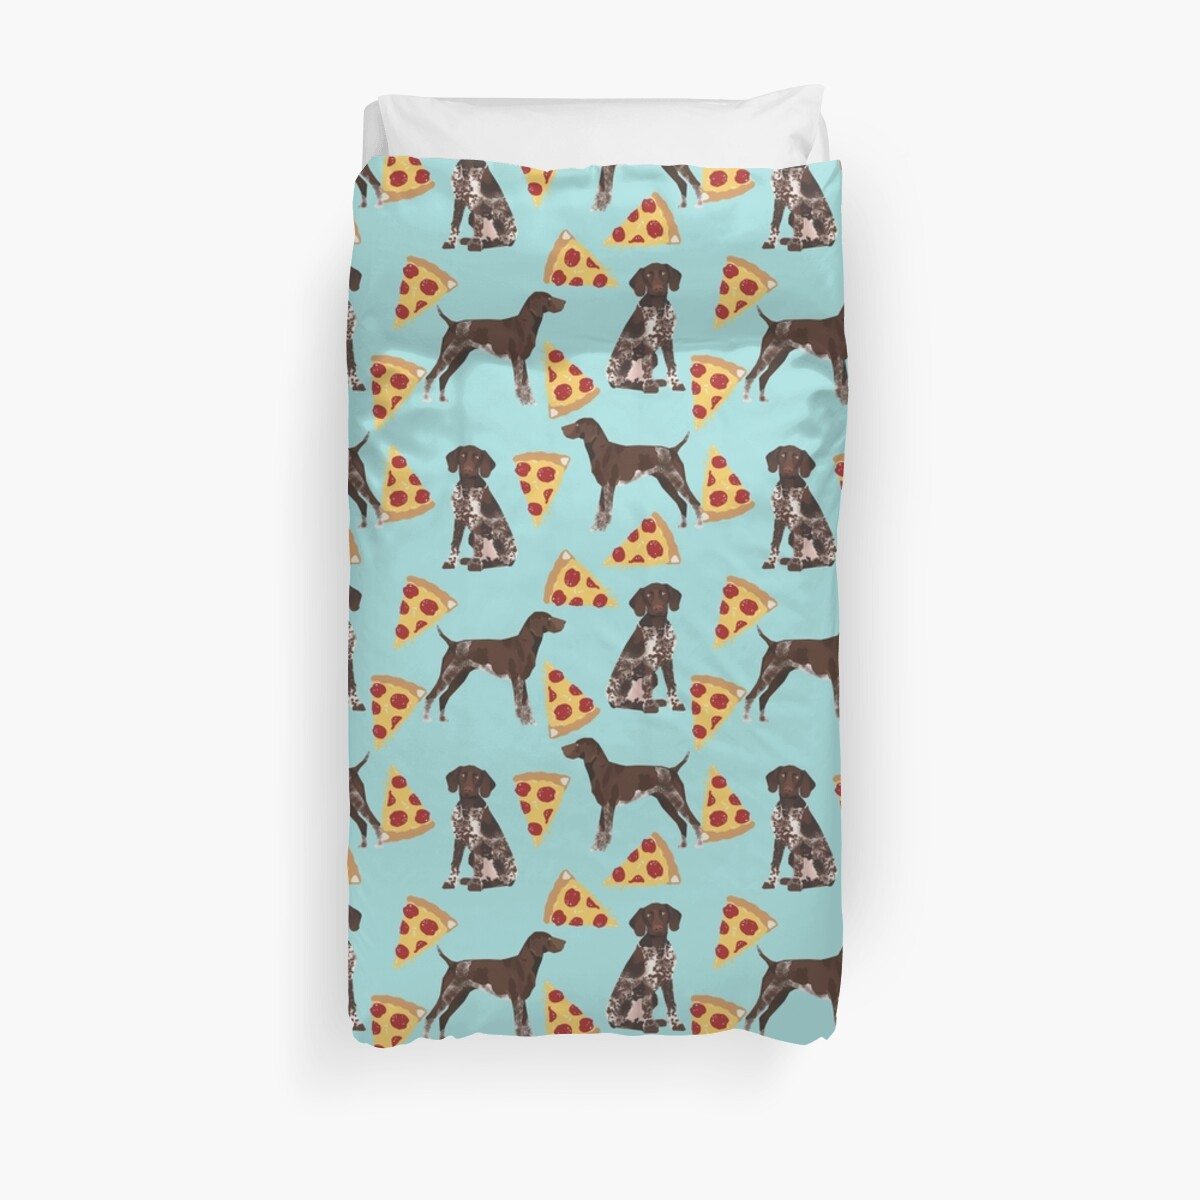 German Shorthair pointer dog breed gifts pizza slice funny dog art ...